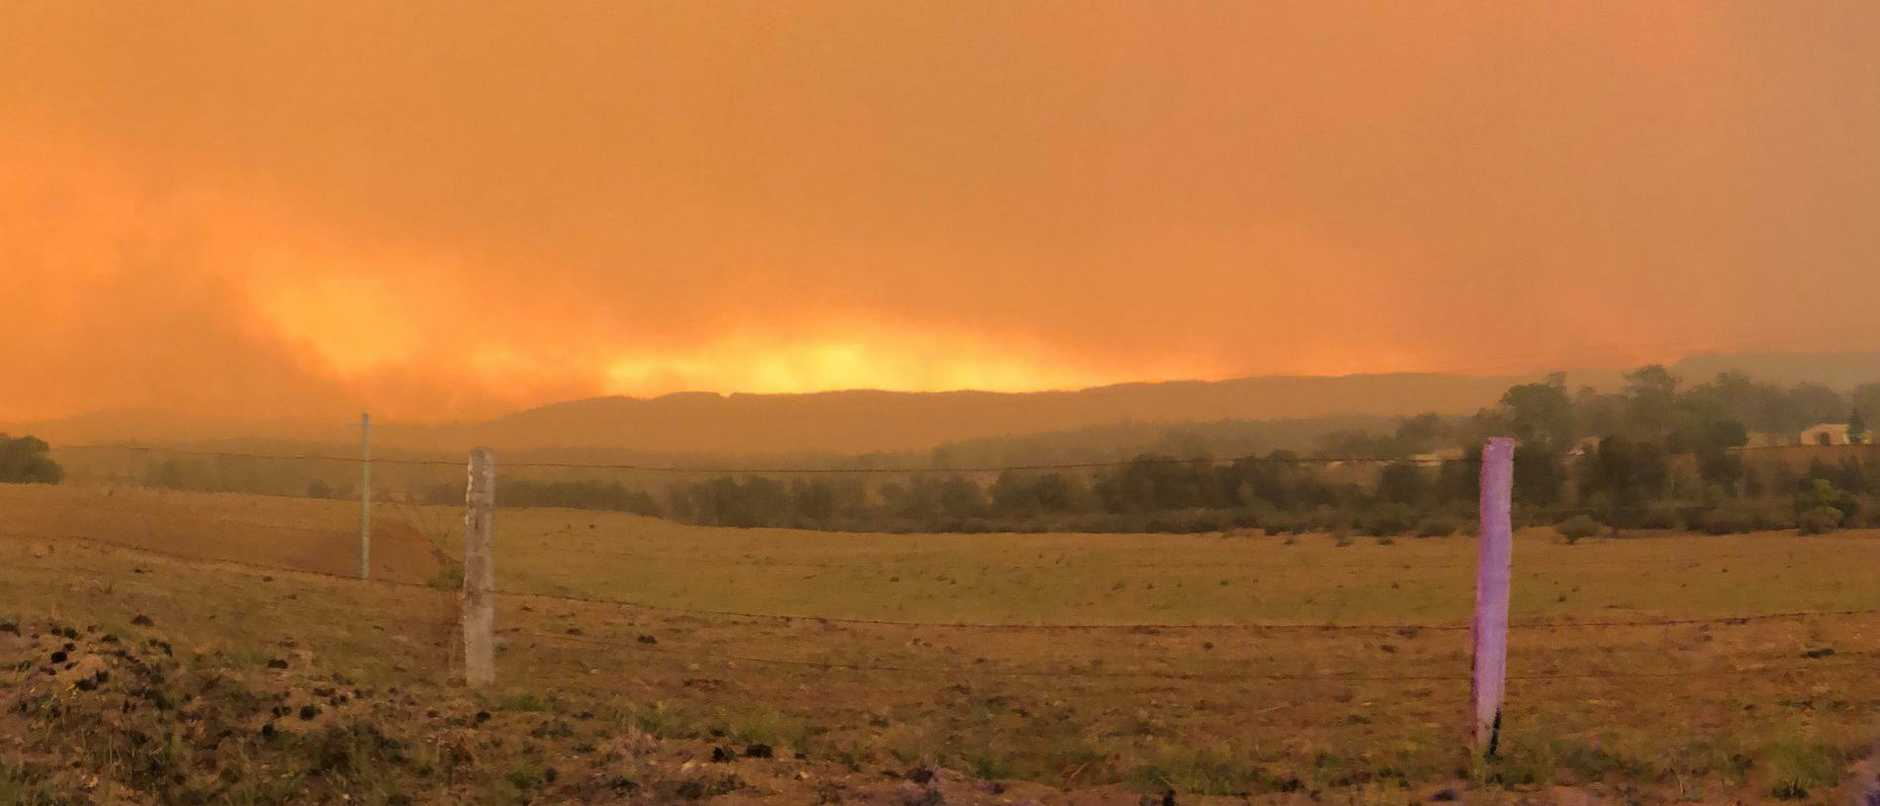 The Liberation Trail bushfire from the Armidale Rd looking west towards Boundary Creek Rd as it approached Nymboida on the afternoon of Friday, 8th November, 2019. Photo: Lawrence RFS Captain Scott Campbell